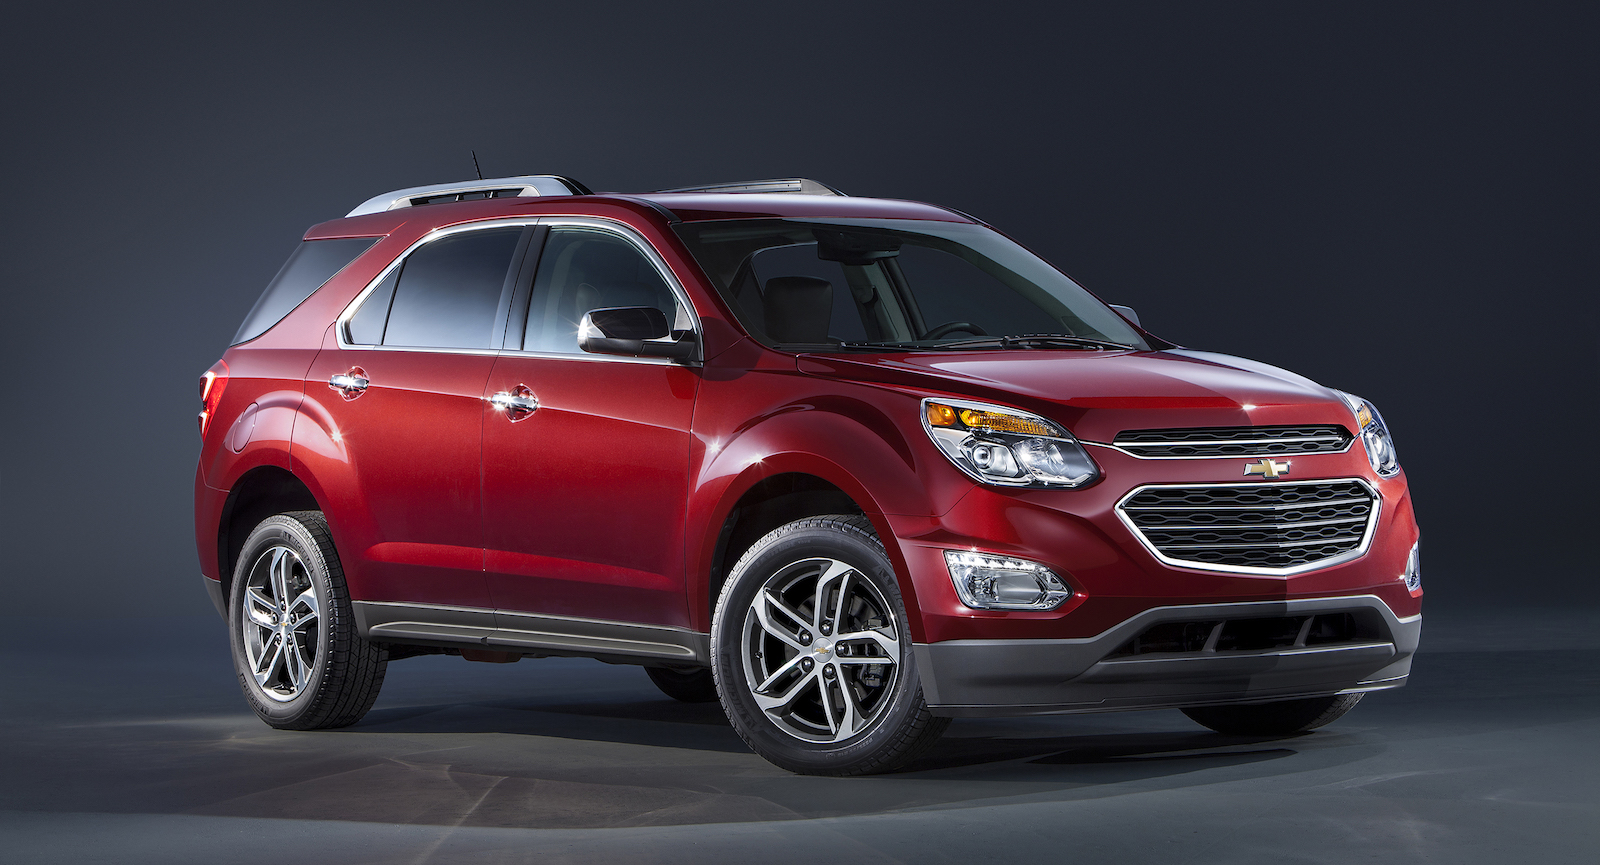 Nissan Fort Worth Used Cars 2016 Chevrolet Equinox (Chevy) Review, Ratings, Specs ...